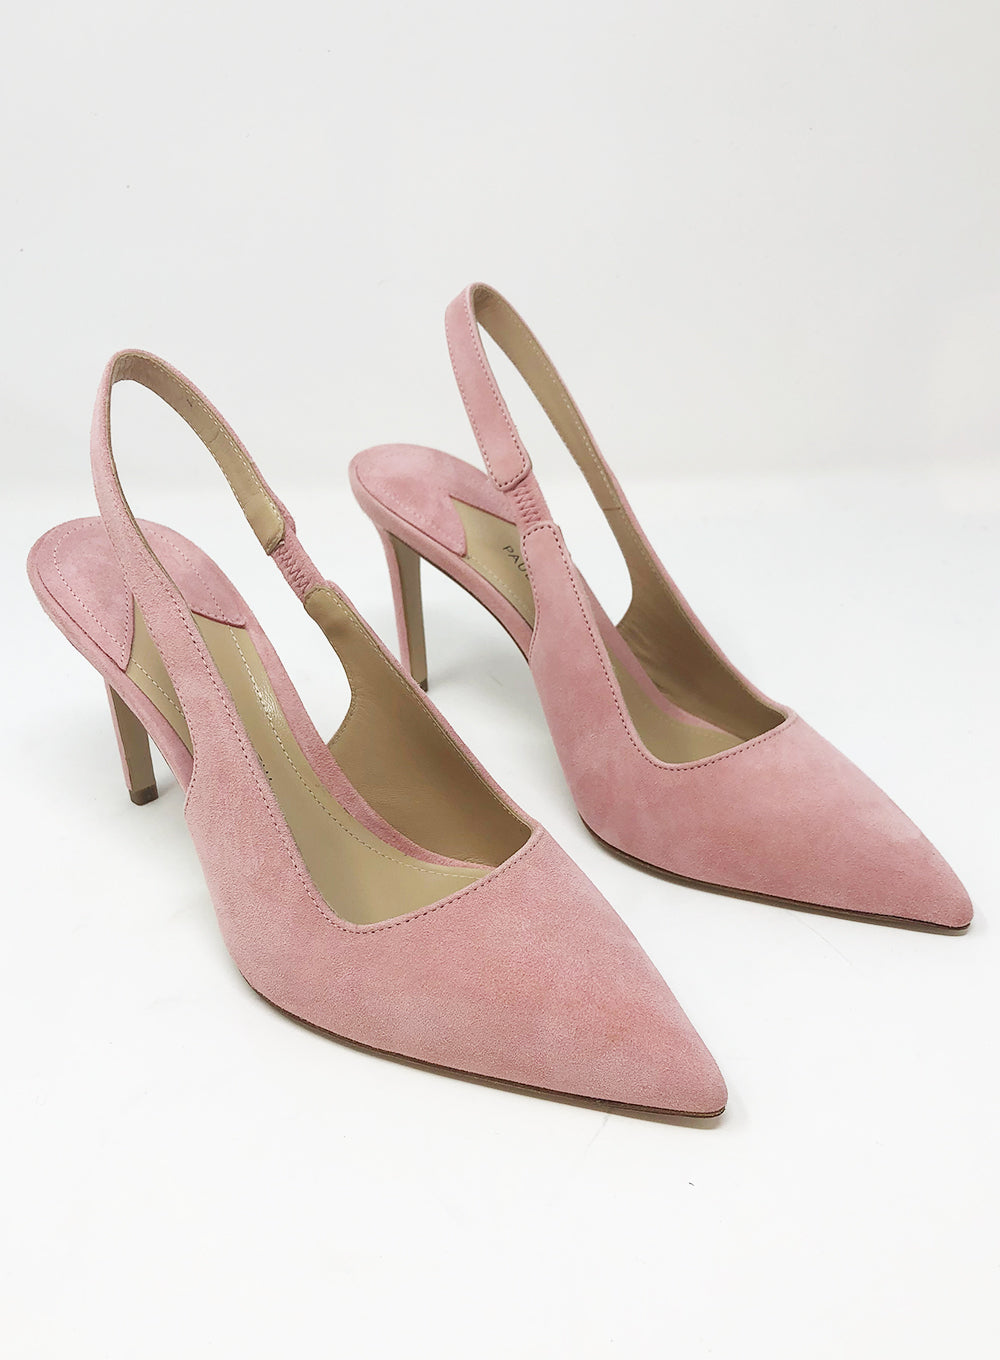 PAUL ANDREW | 'Coquette' Suede Slingback Pumps in Rose